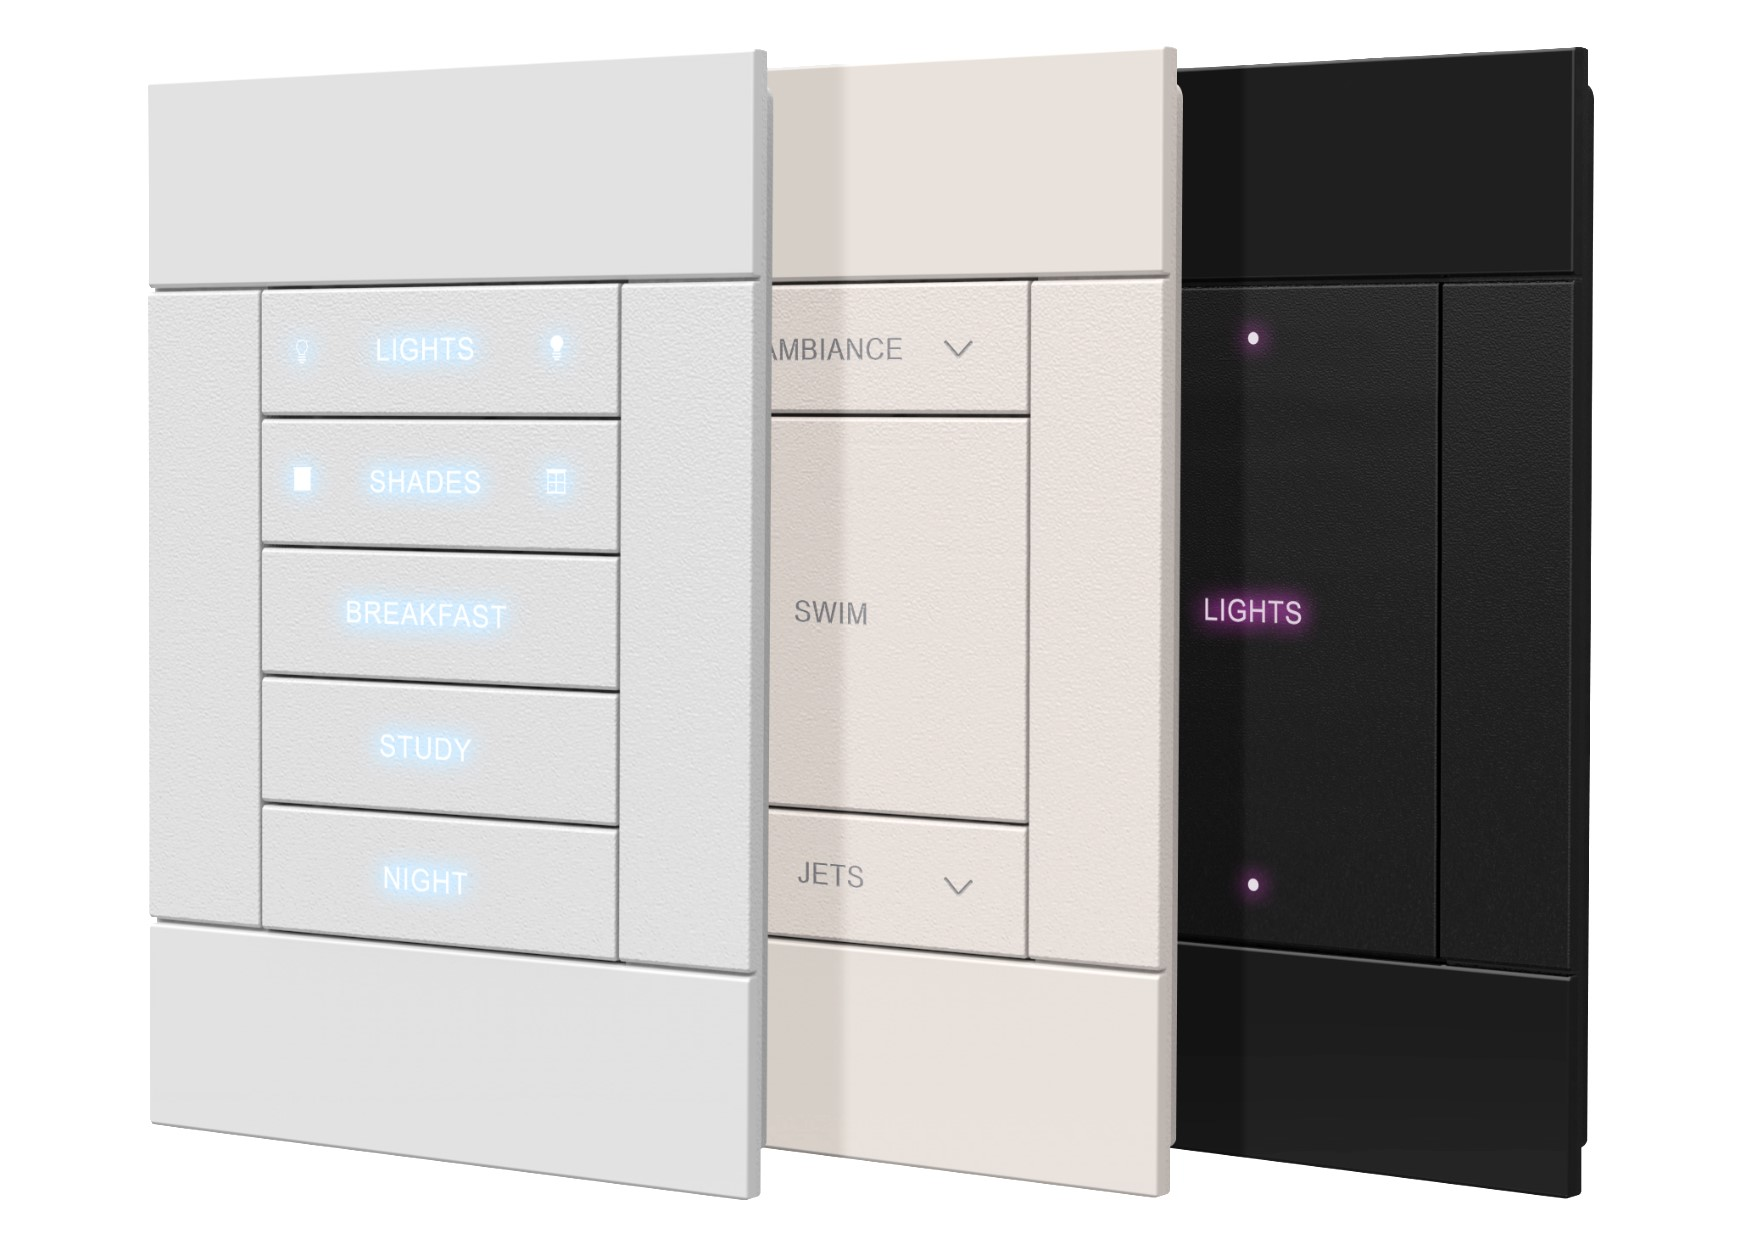 New Wireless Dimmers And Keypads From Crestron